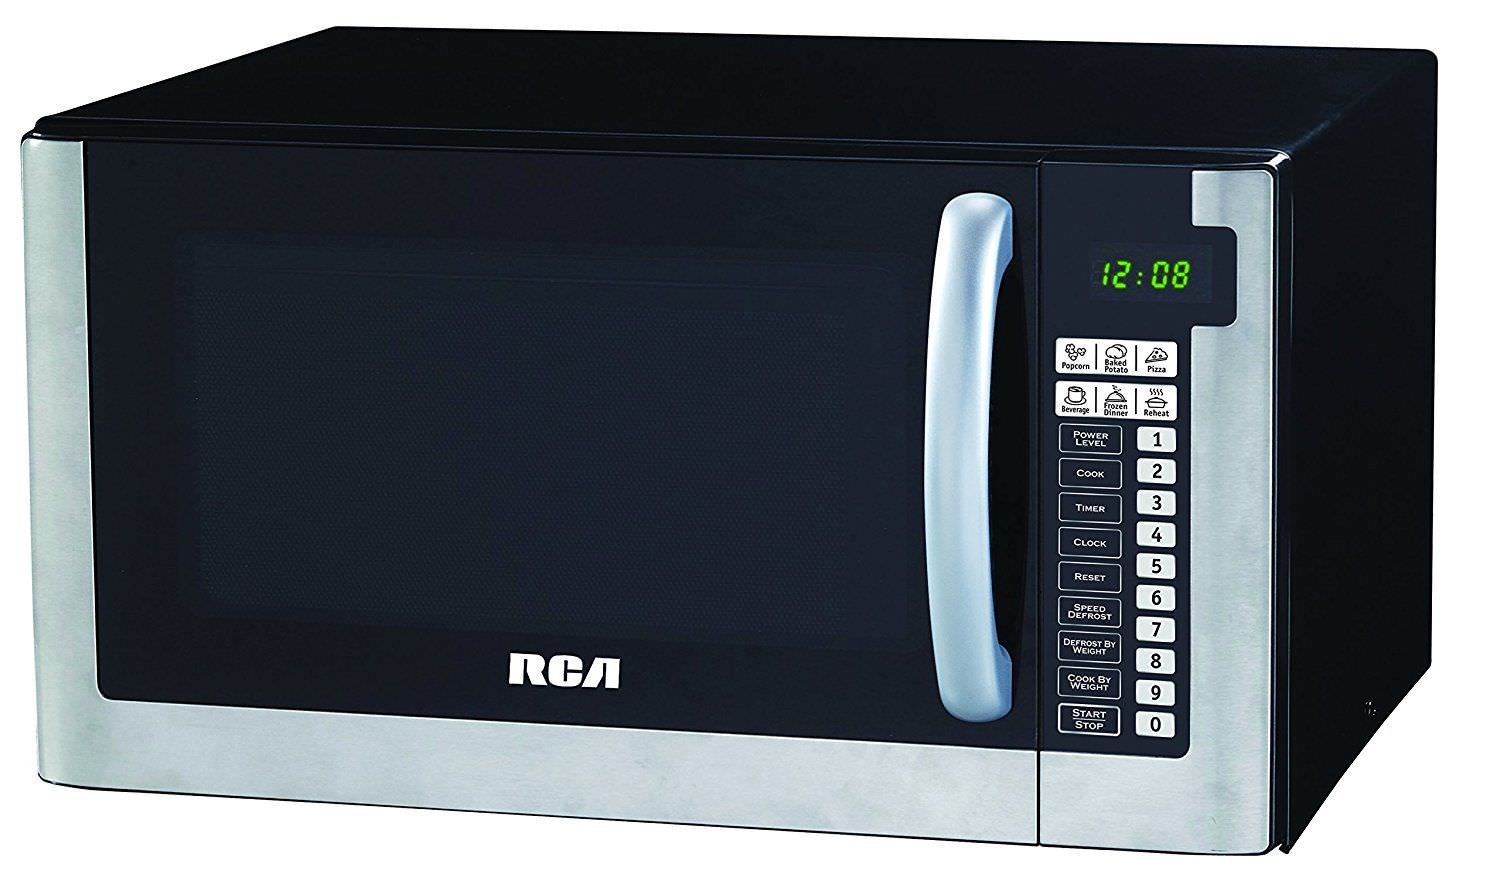 rca 1 2 cubic foot microwave stainless steel walmart com